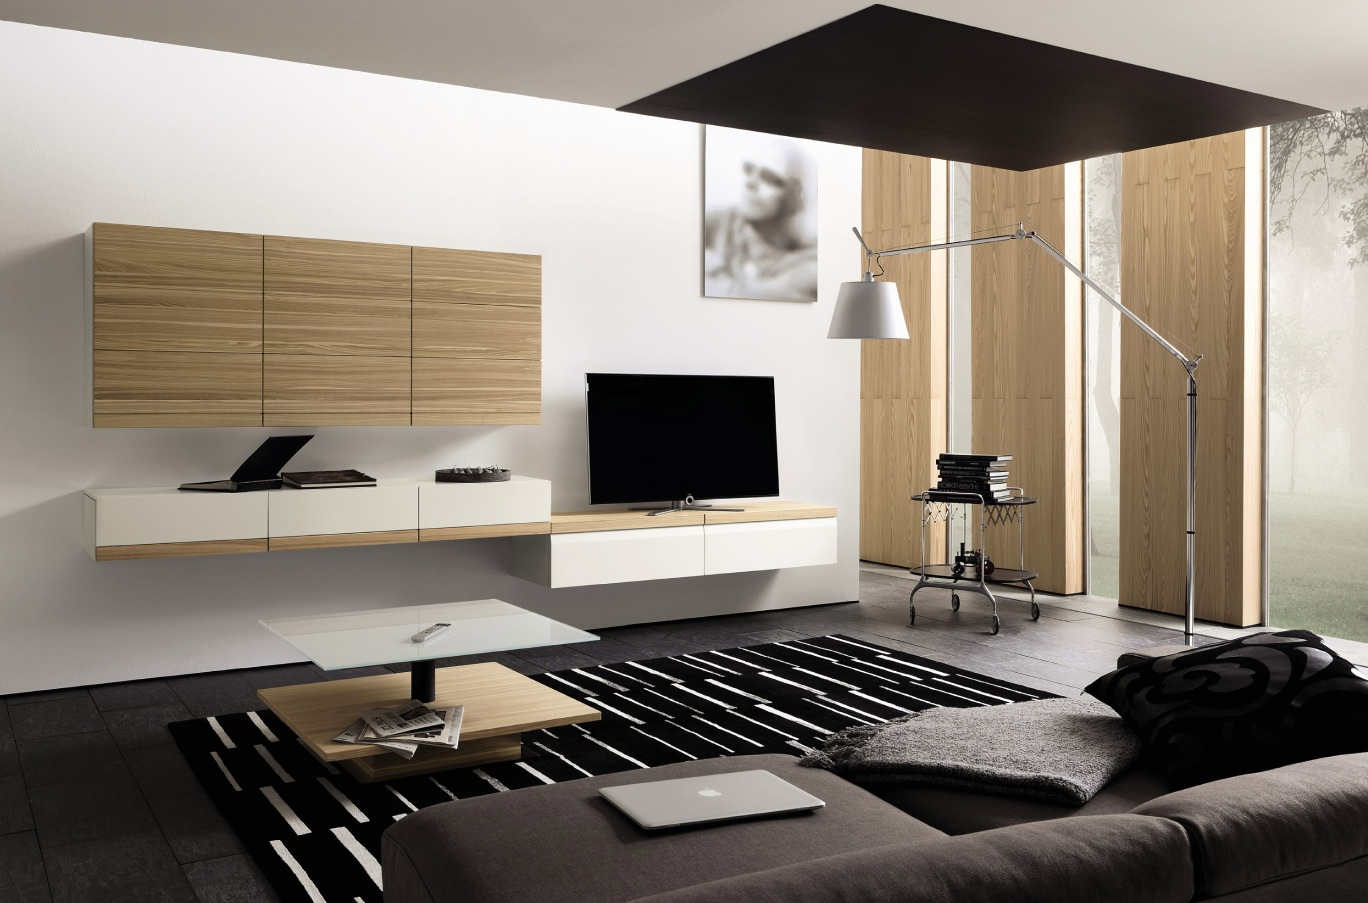 Meuble Tv Fer Forgé Wooden Finish Wall Unit Combinations From Hülsta